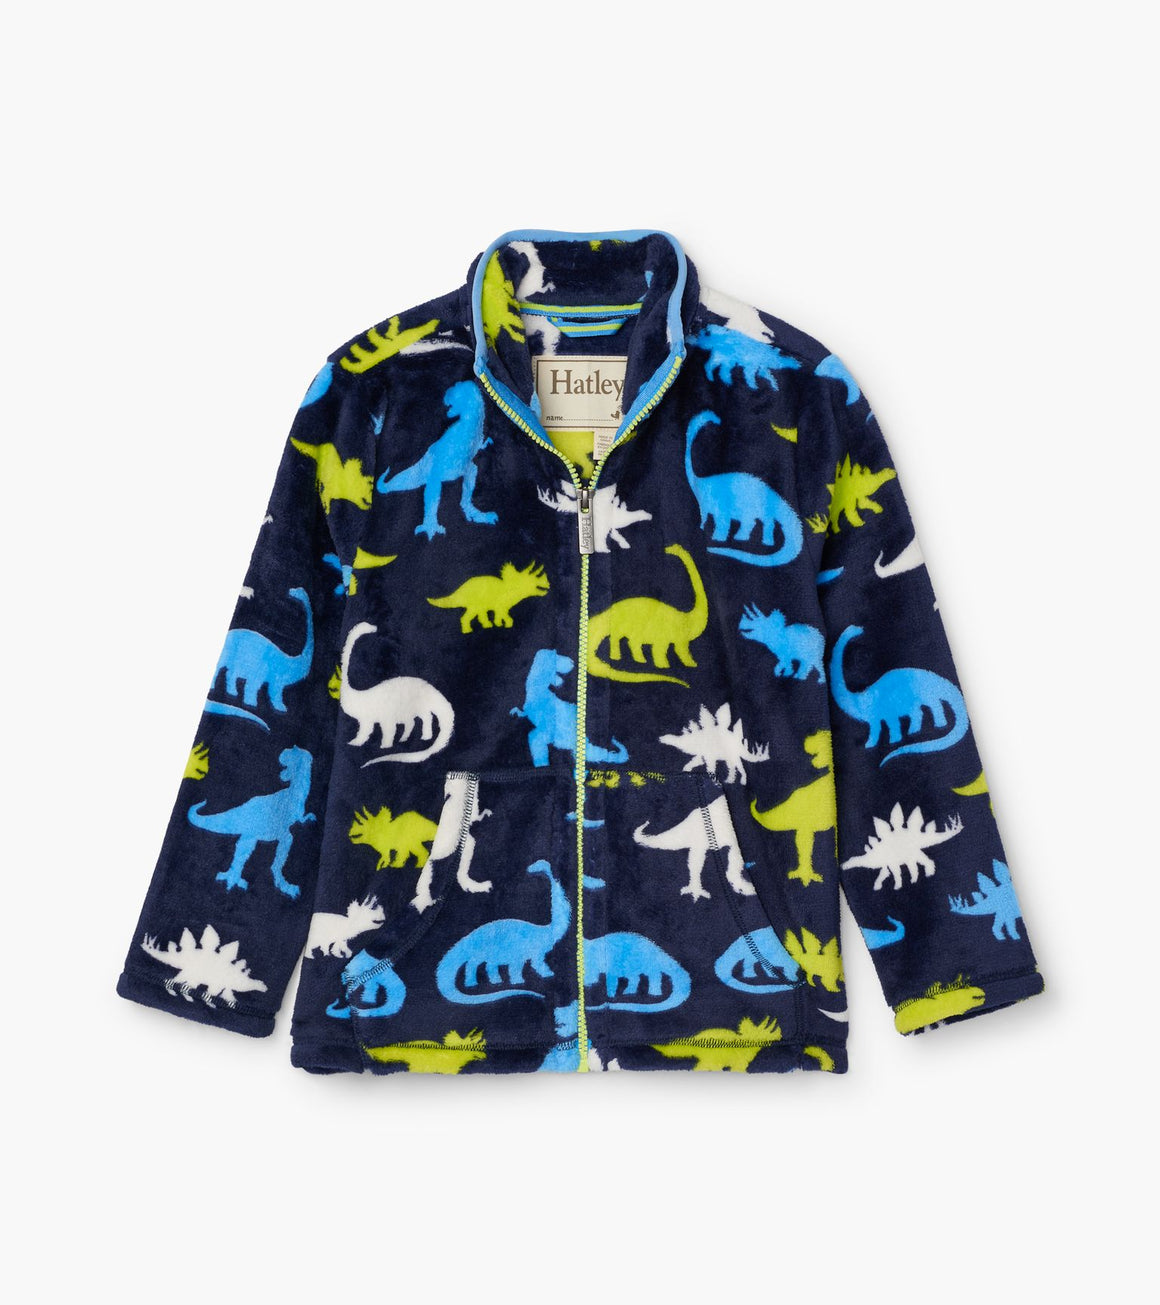 Hatley | Silhouette Dinos Fuzzy Fleece Zip Up